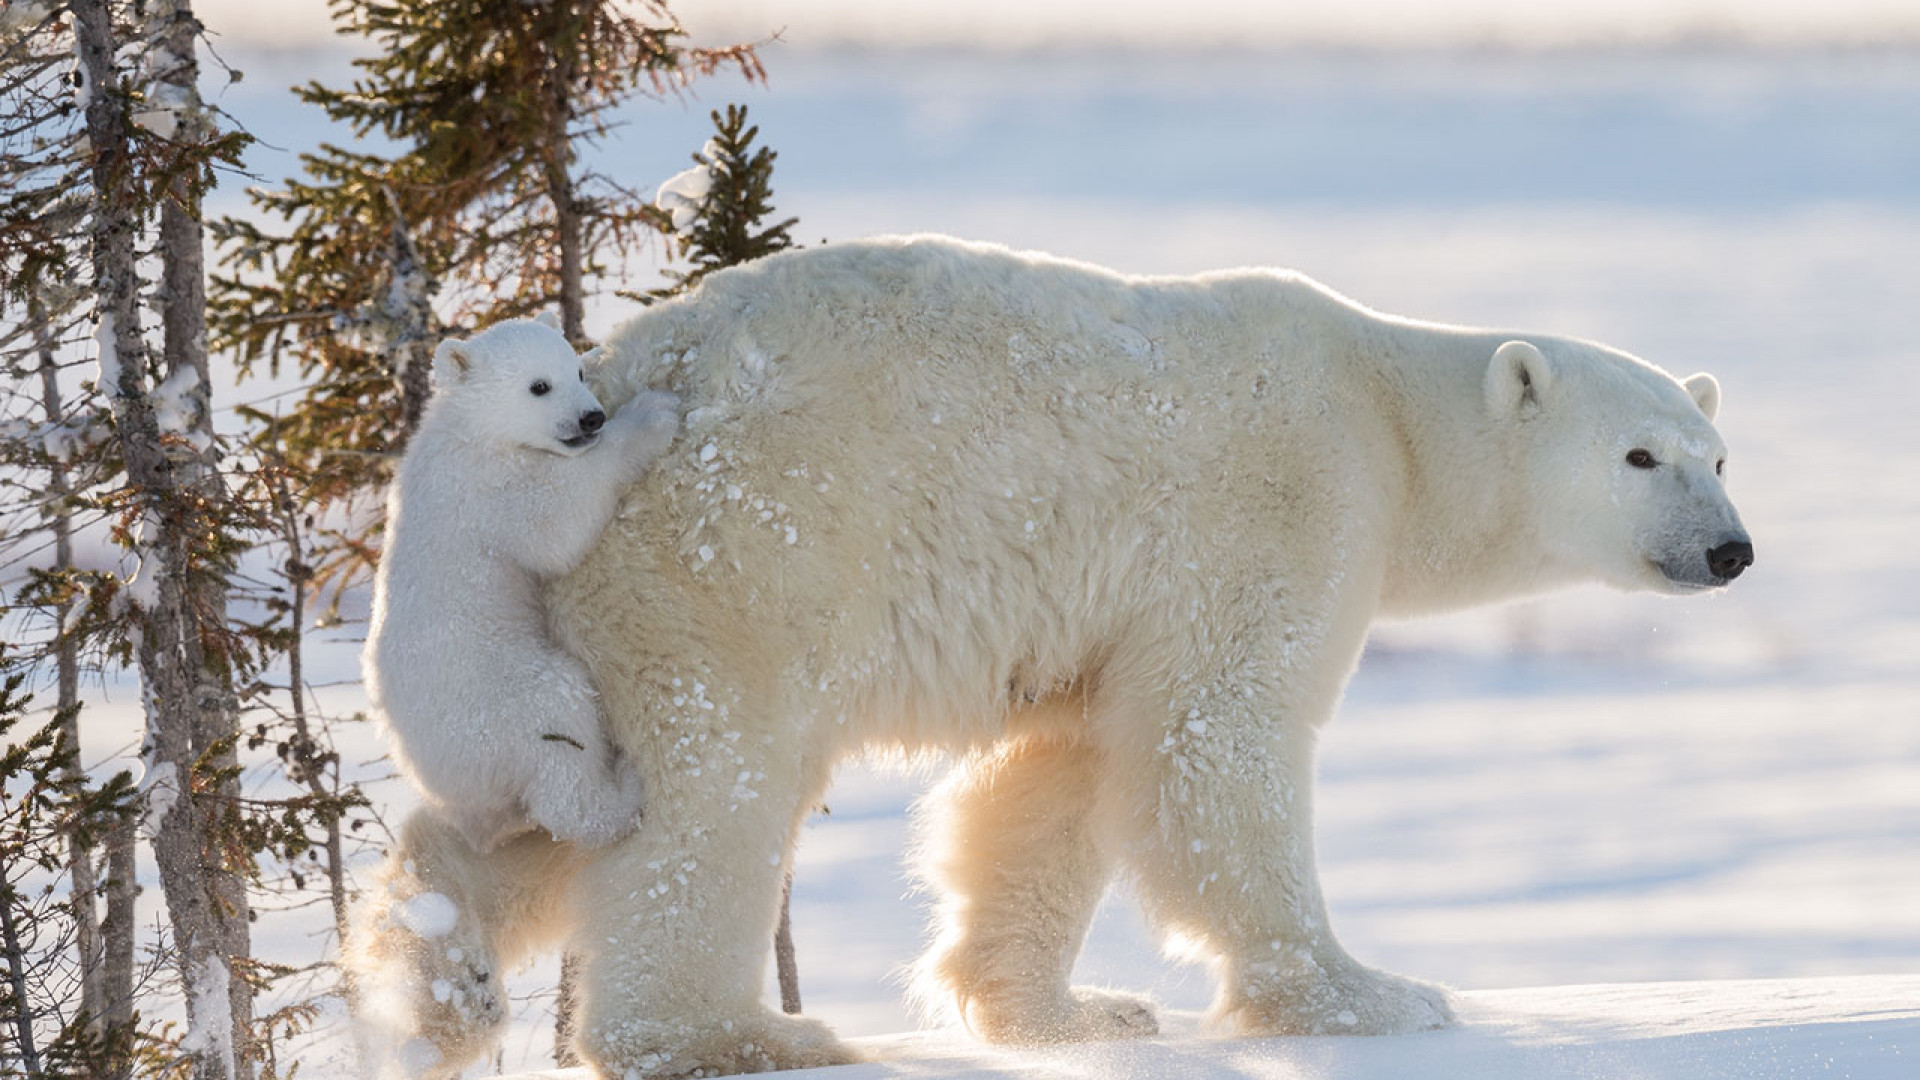 A baby polar bear holding onto its mother